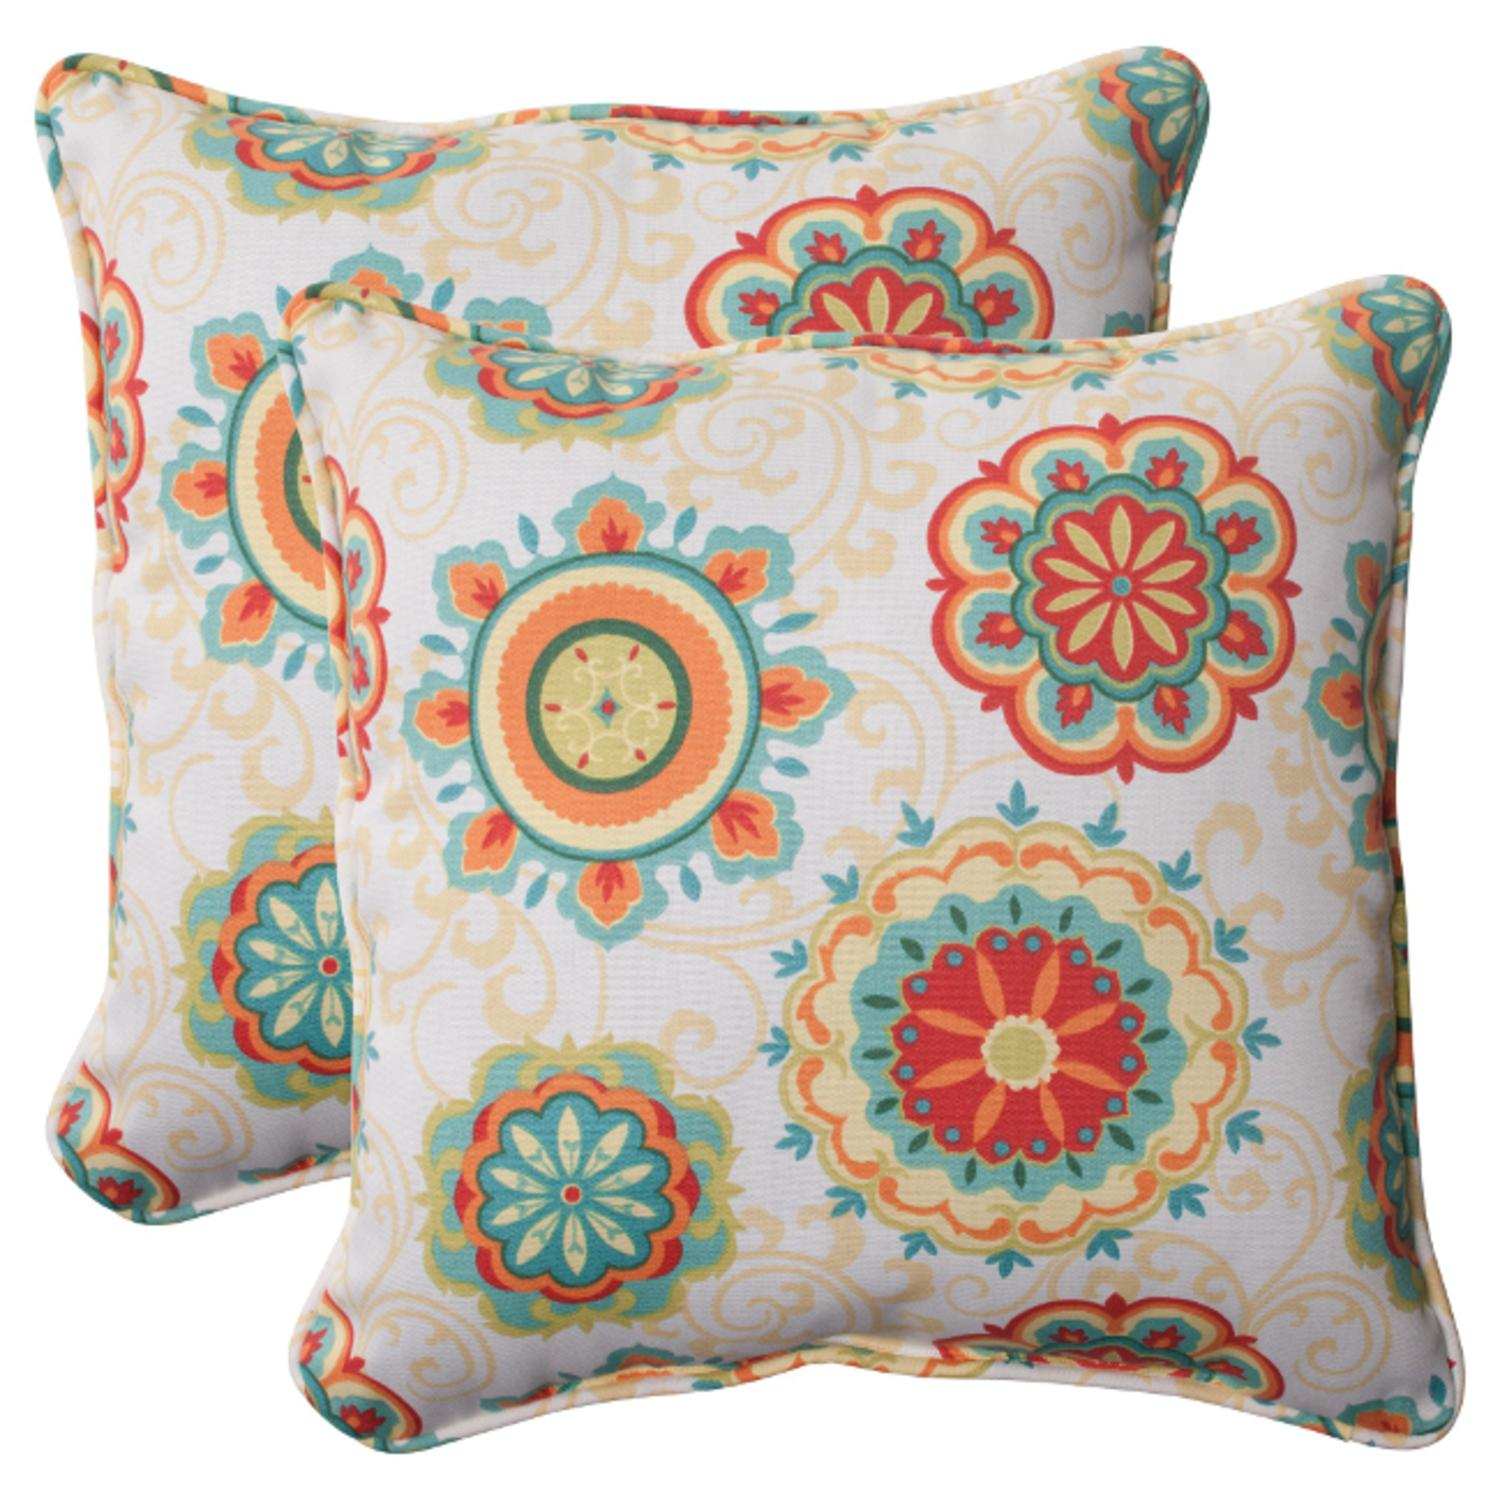 Set of 2 Retro Floral Medallion Outdoor Patio Corded Square Throw Pillows 18.5""